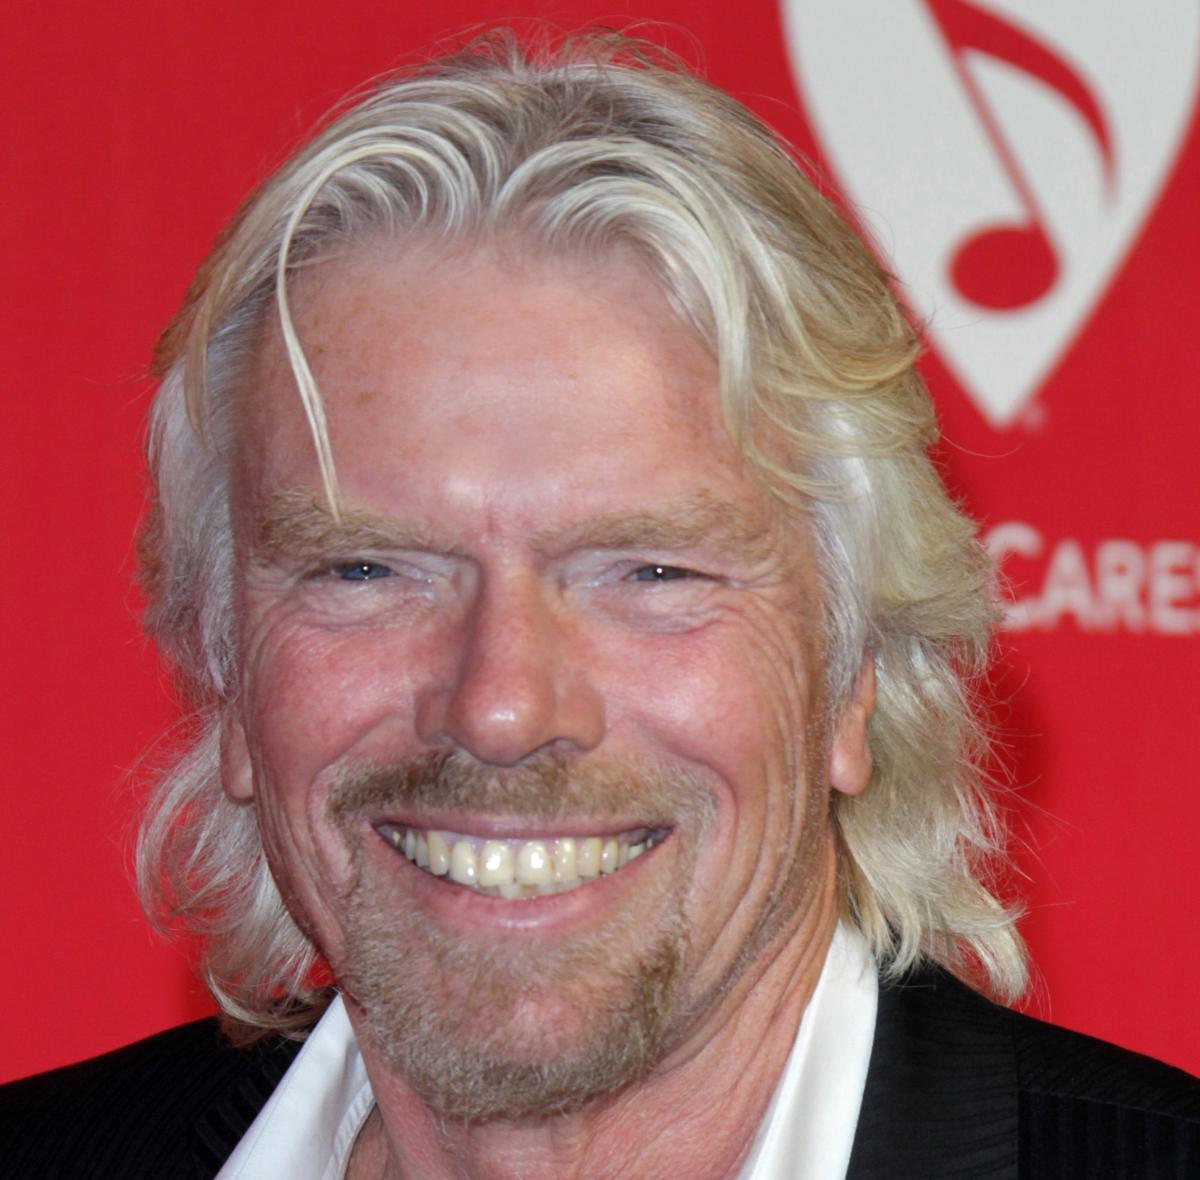 The global gym chain was founded by Sir Richard Branson in 1999 / Shutterstock.com